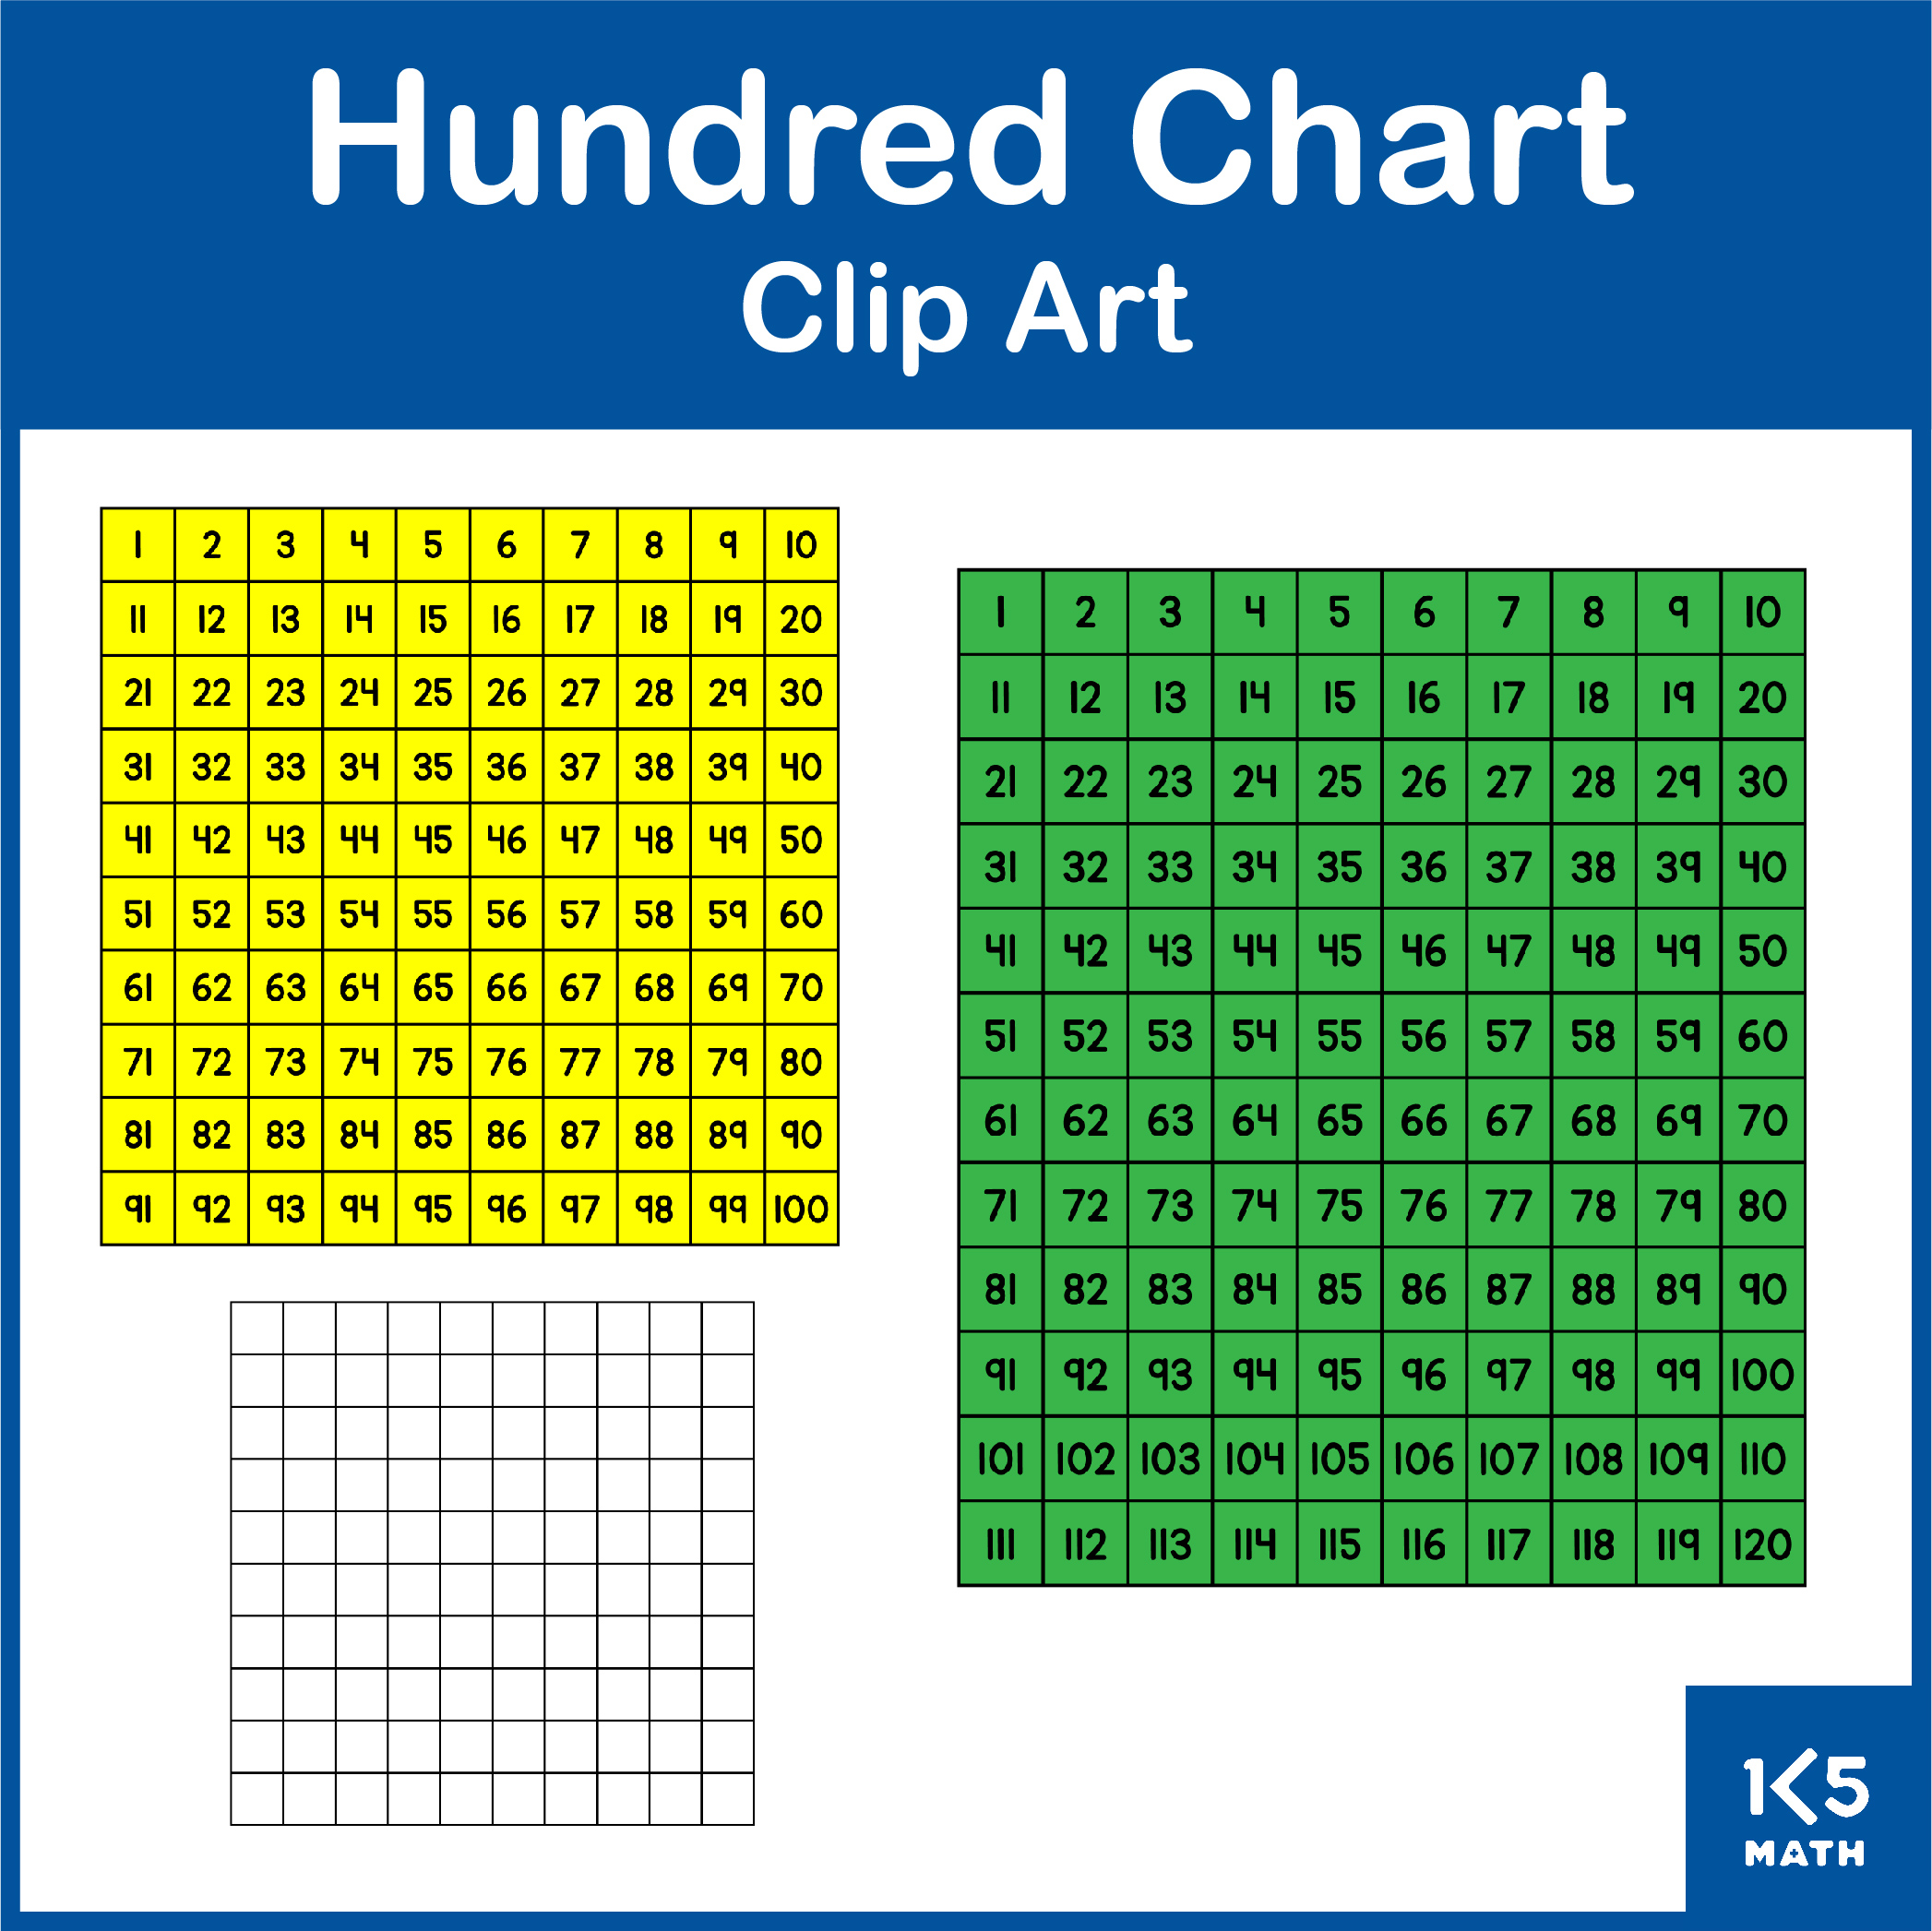 Hundred Chart Clip Art